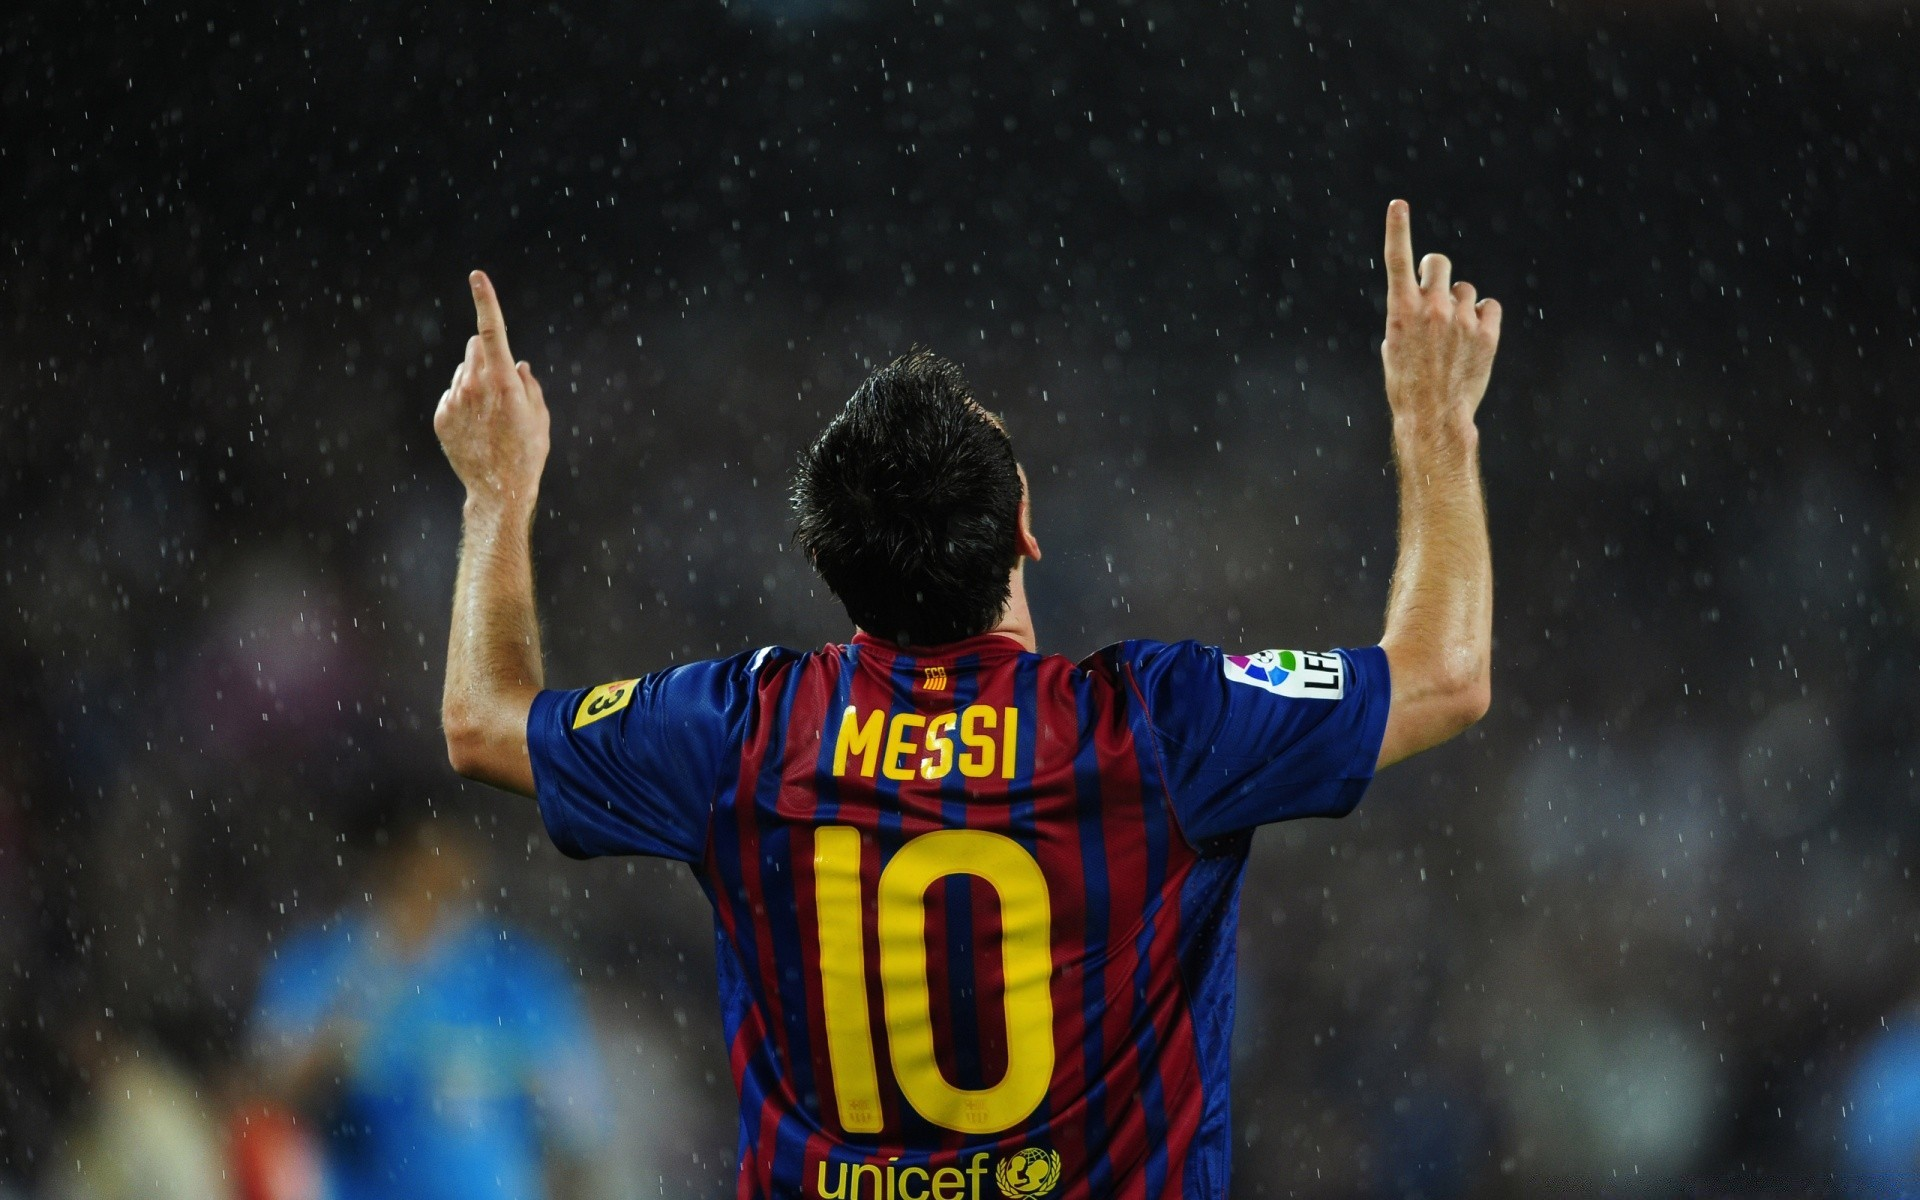 lionel messi best soccer player in He became a world renowned soccer player even though he started out with so little lionel messi is a christ follower that i think is a great player he is not dead he is 27 years old his education is not spoken about lionel messi is the best go barcelona.